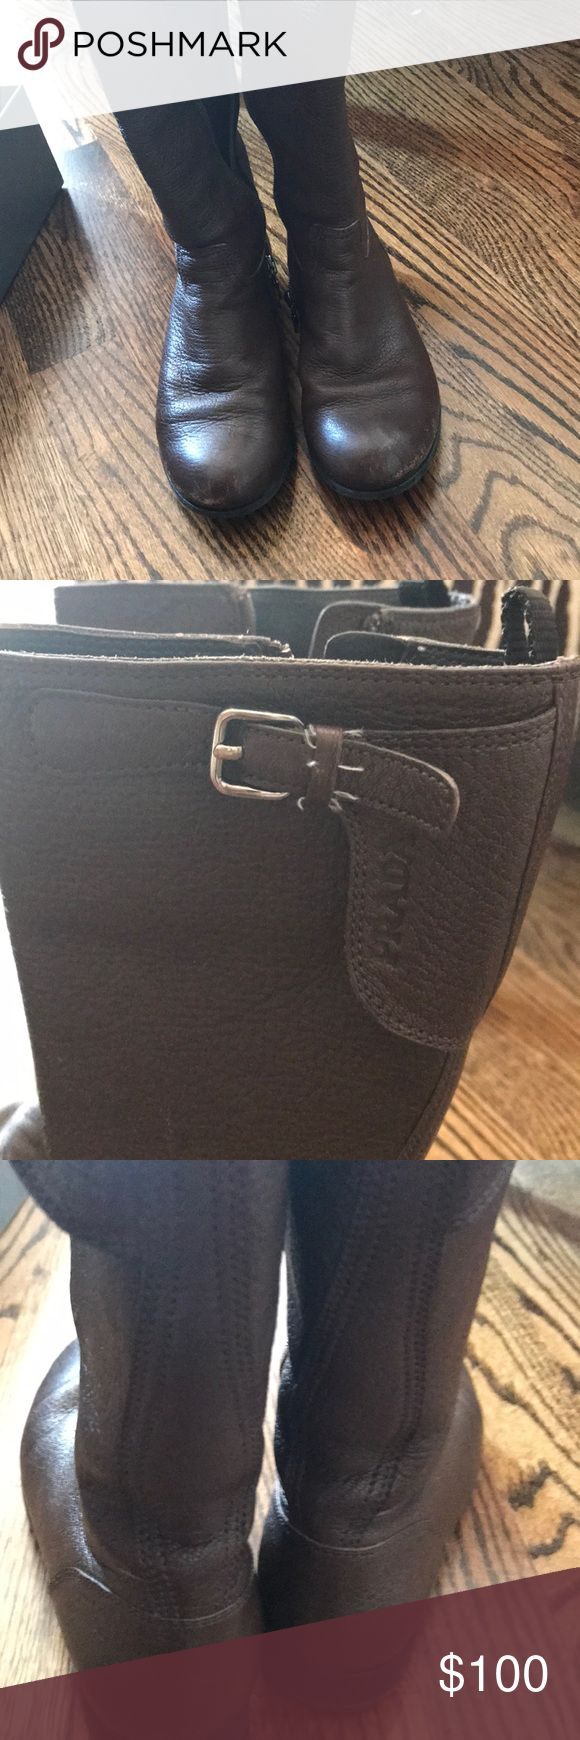 Little girls Prada dark brown riding boots Dark brown, excellent condition, riding boots size 29, still have the box Prada Shoes Boots